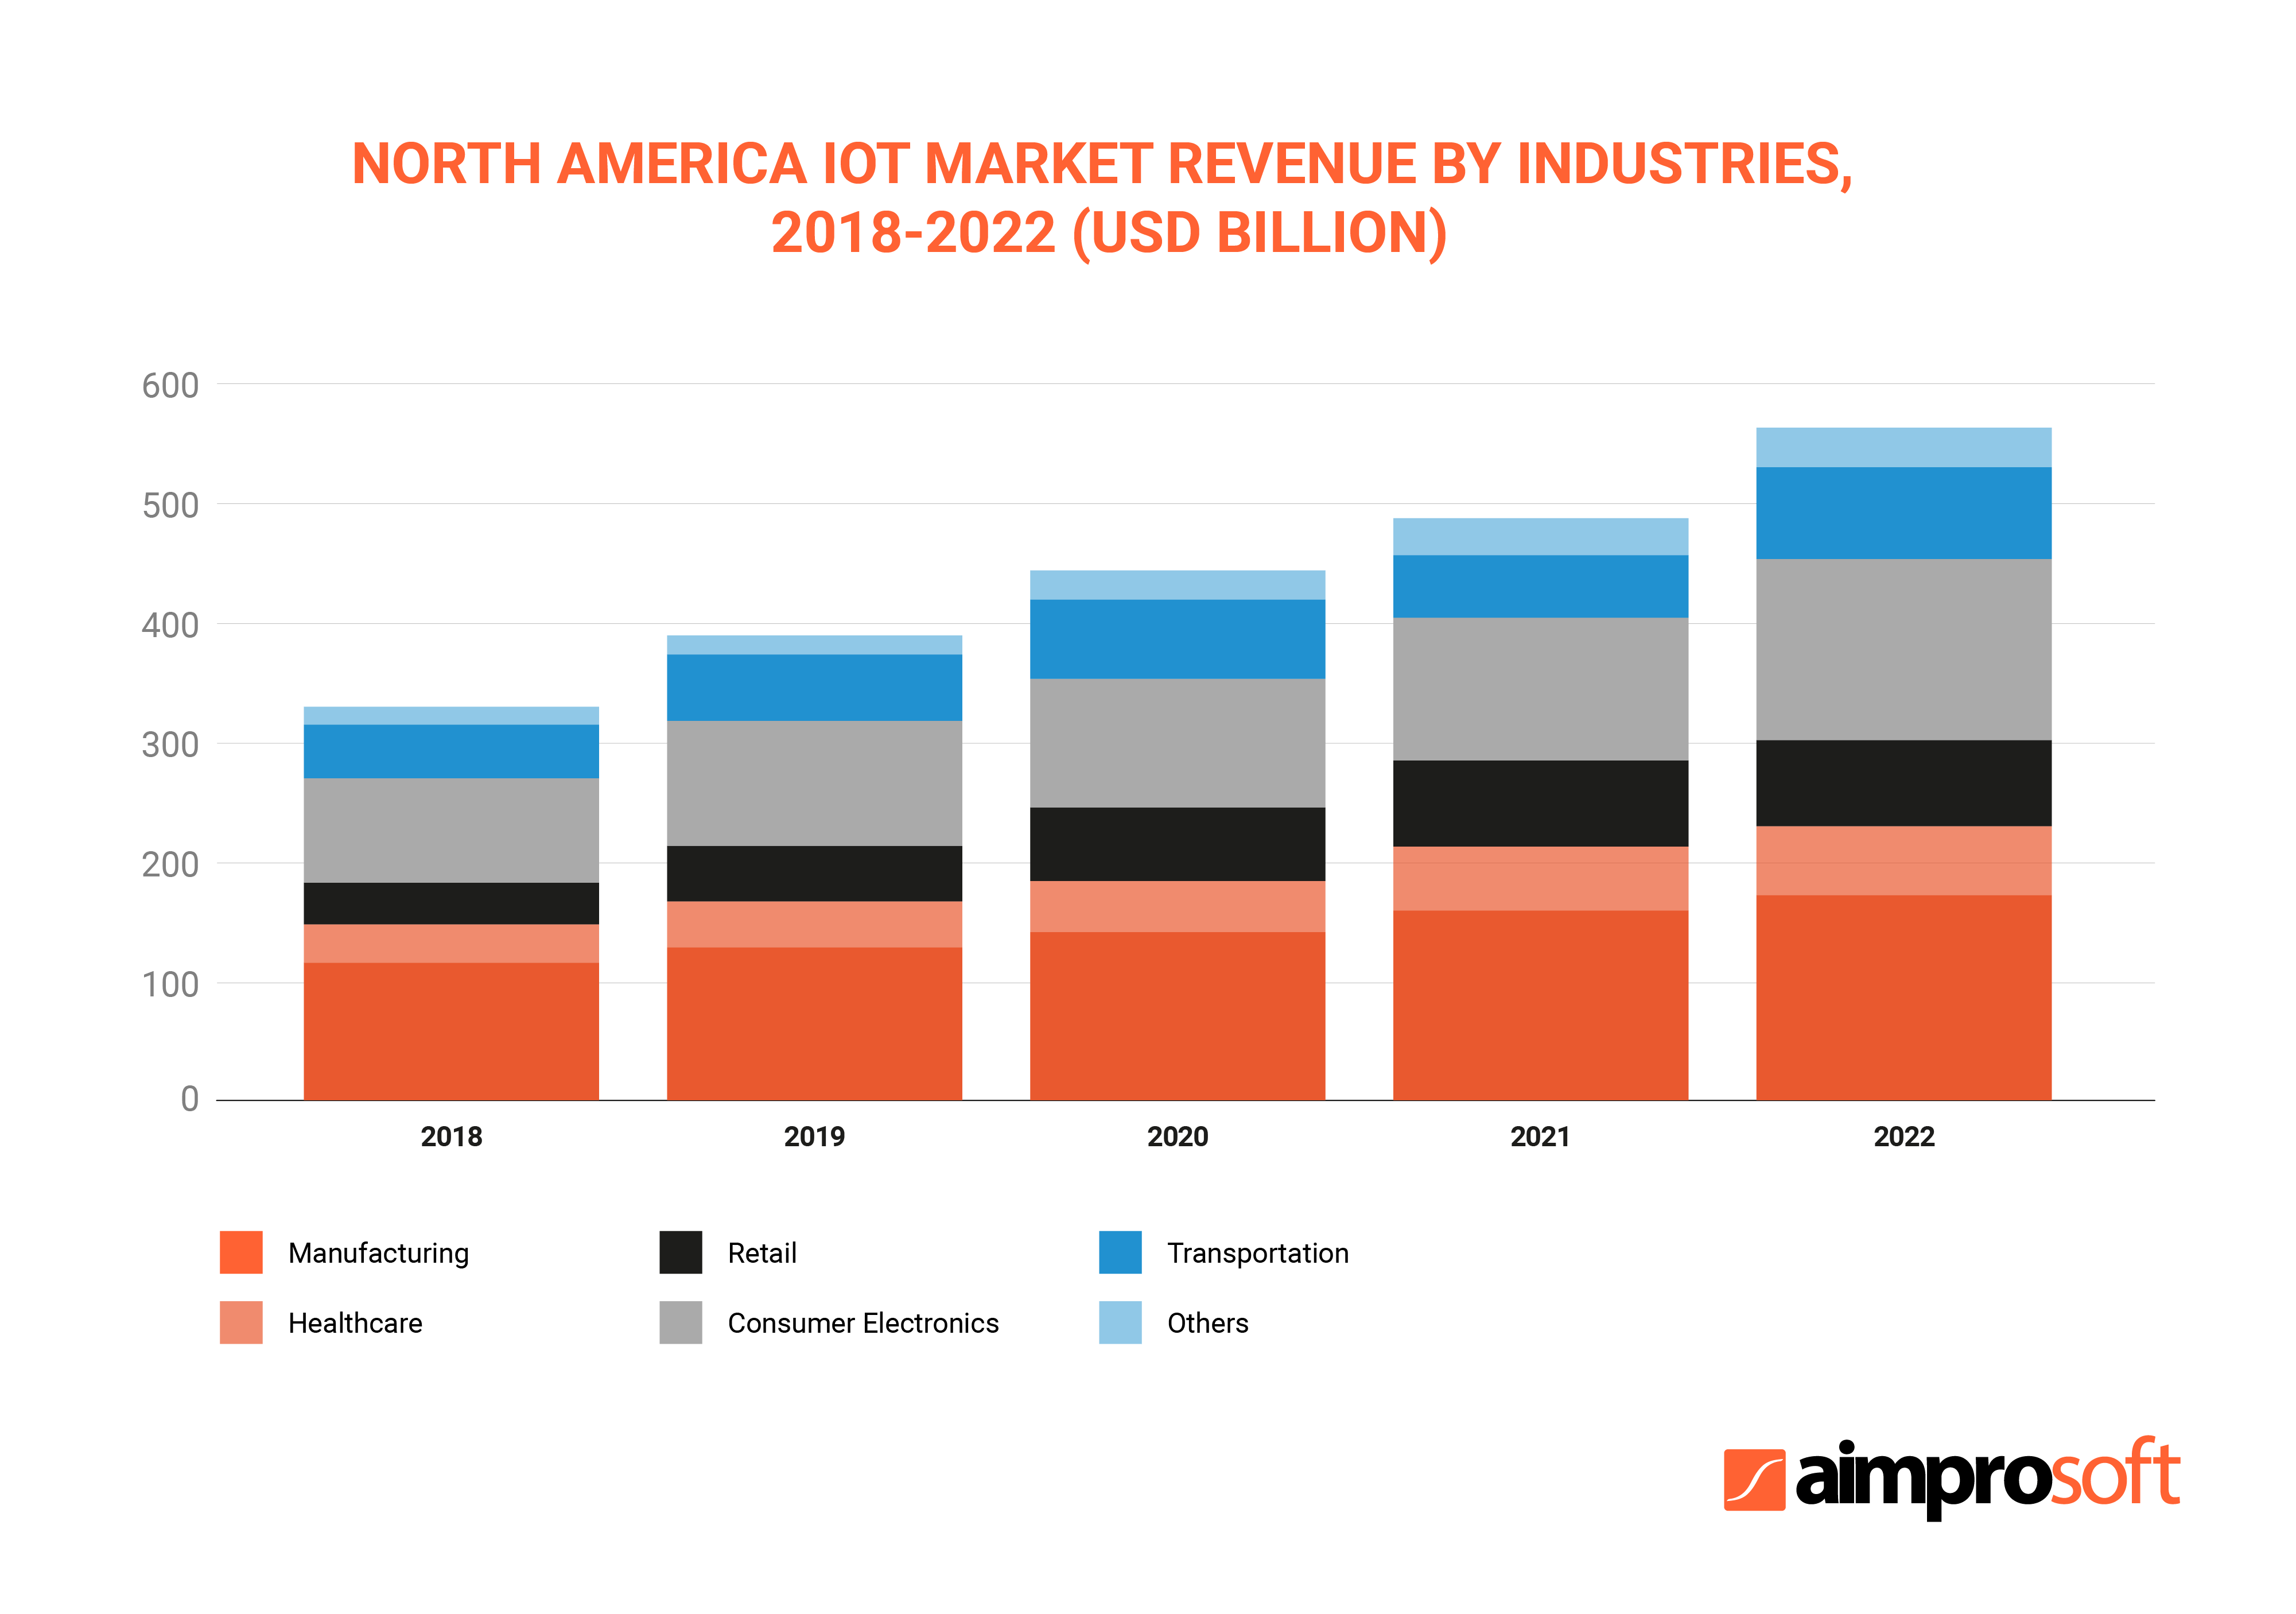 North America IoT market revenue by industries, 2018-2022